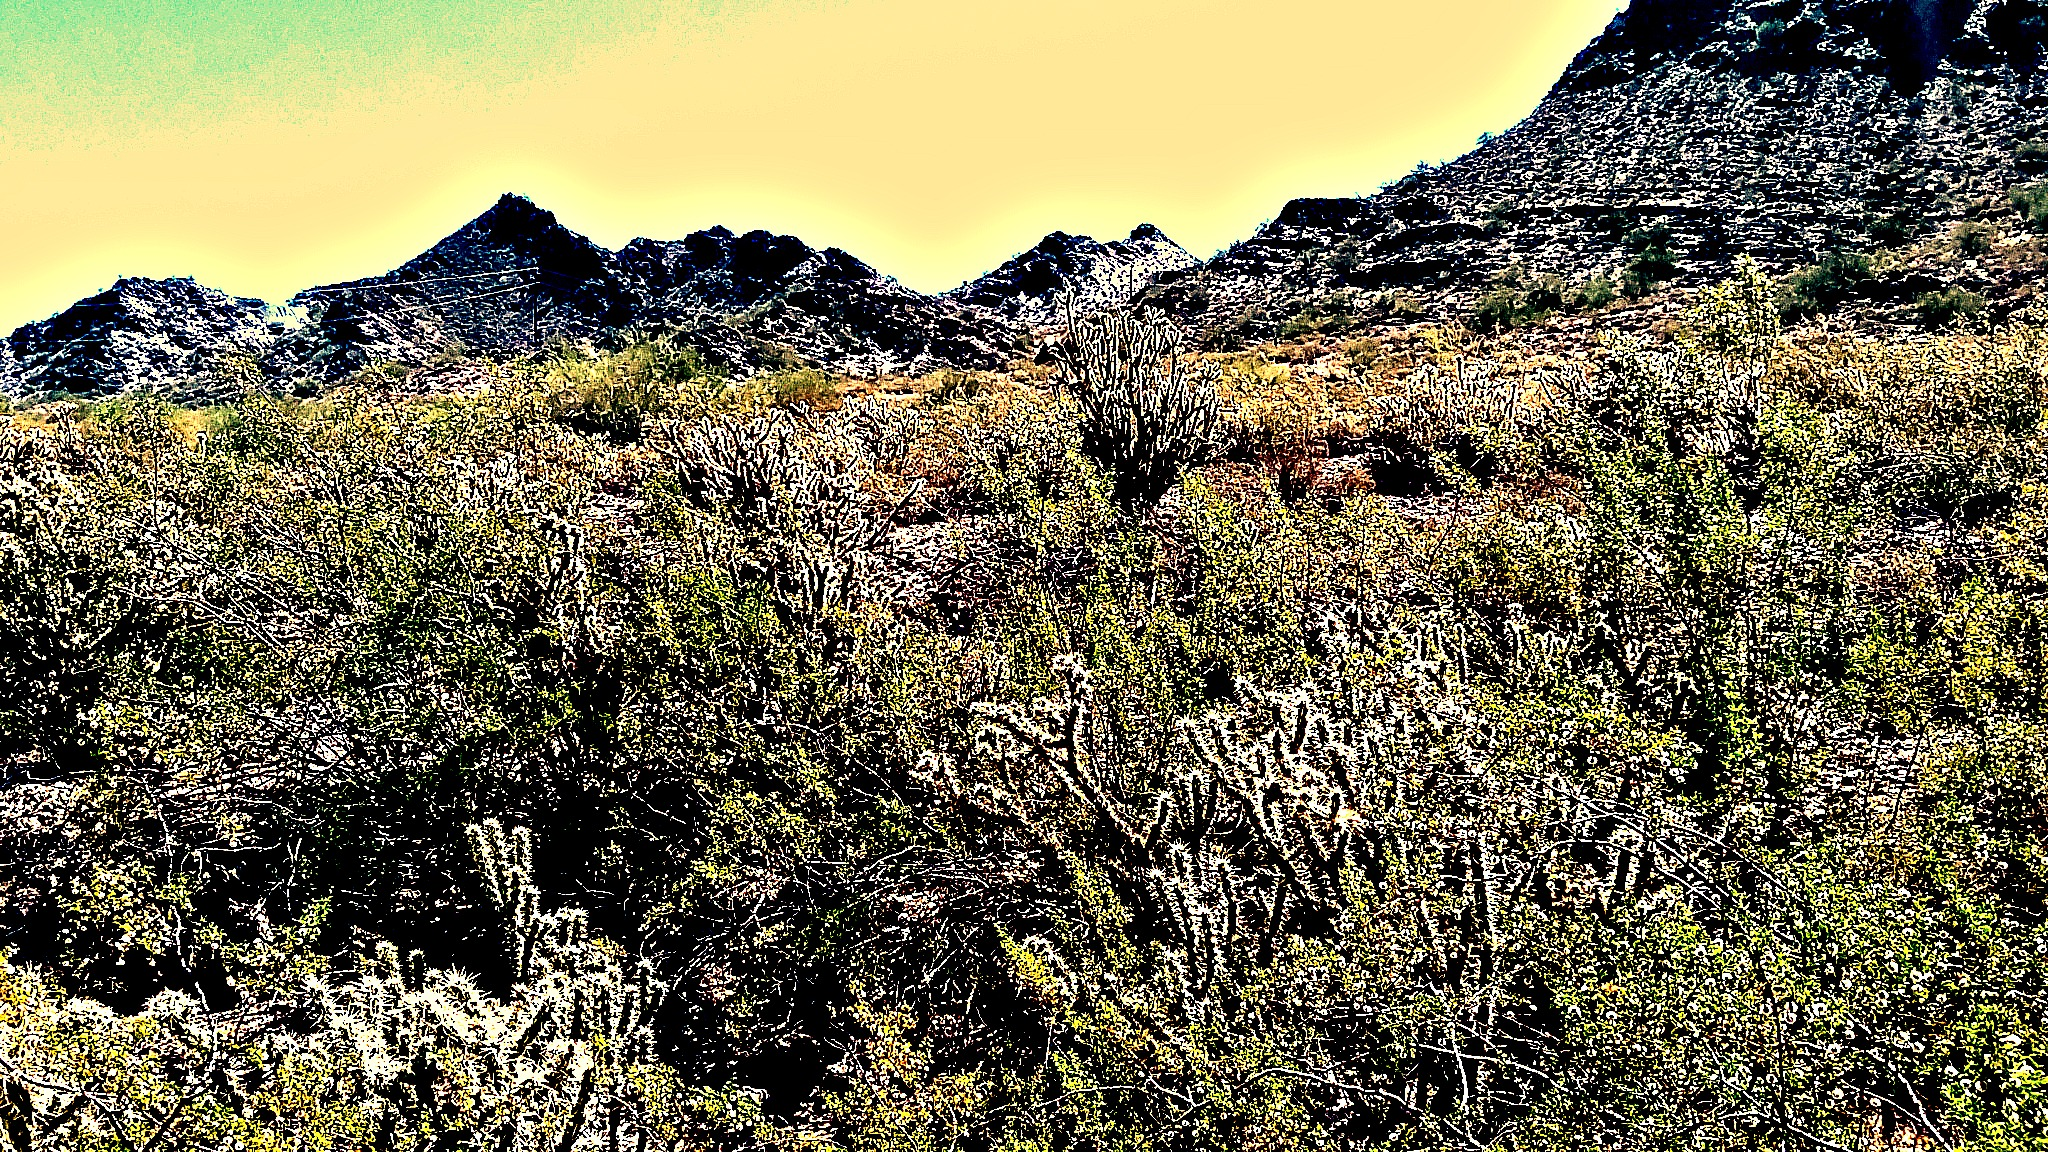 The Sonoran Desert of Arizona